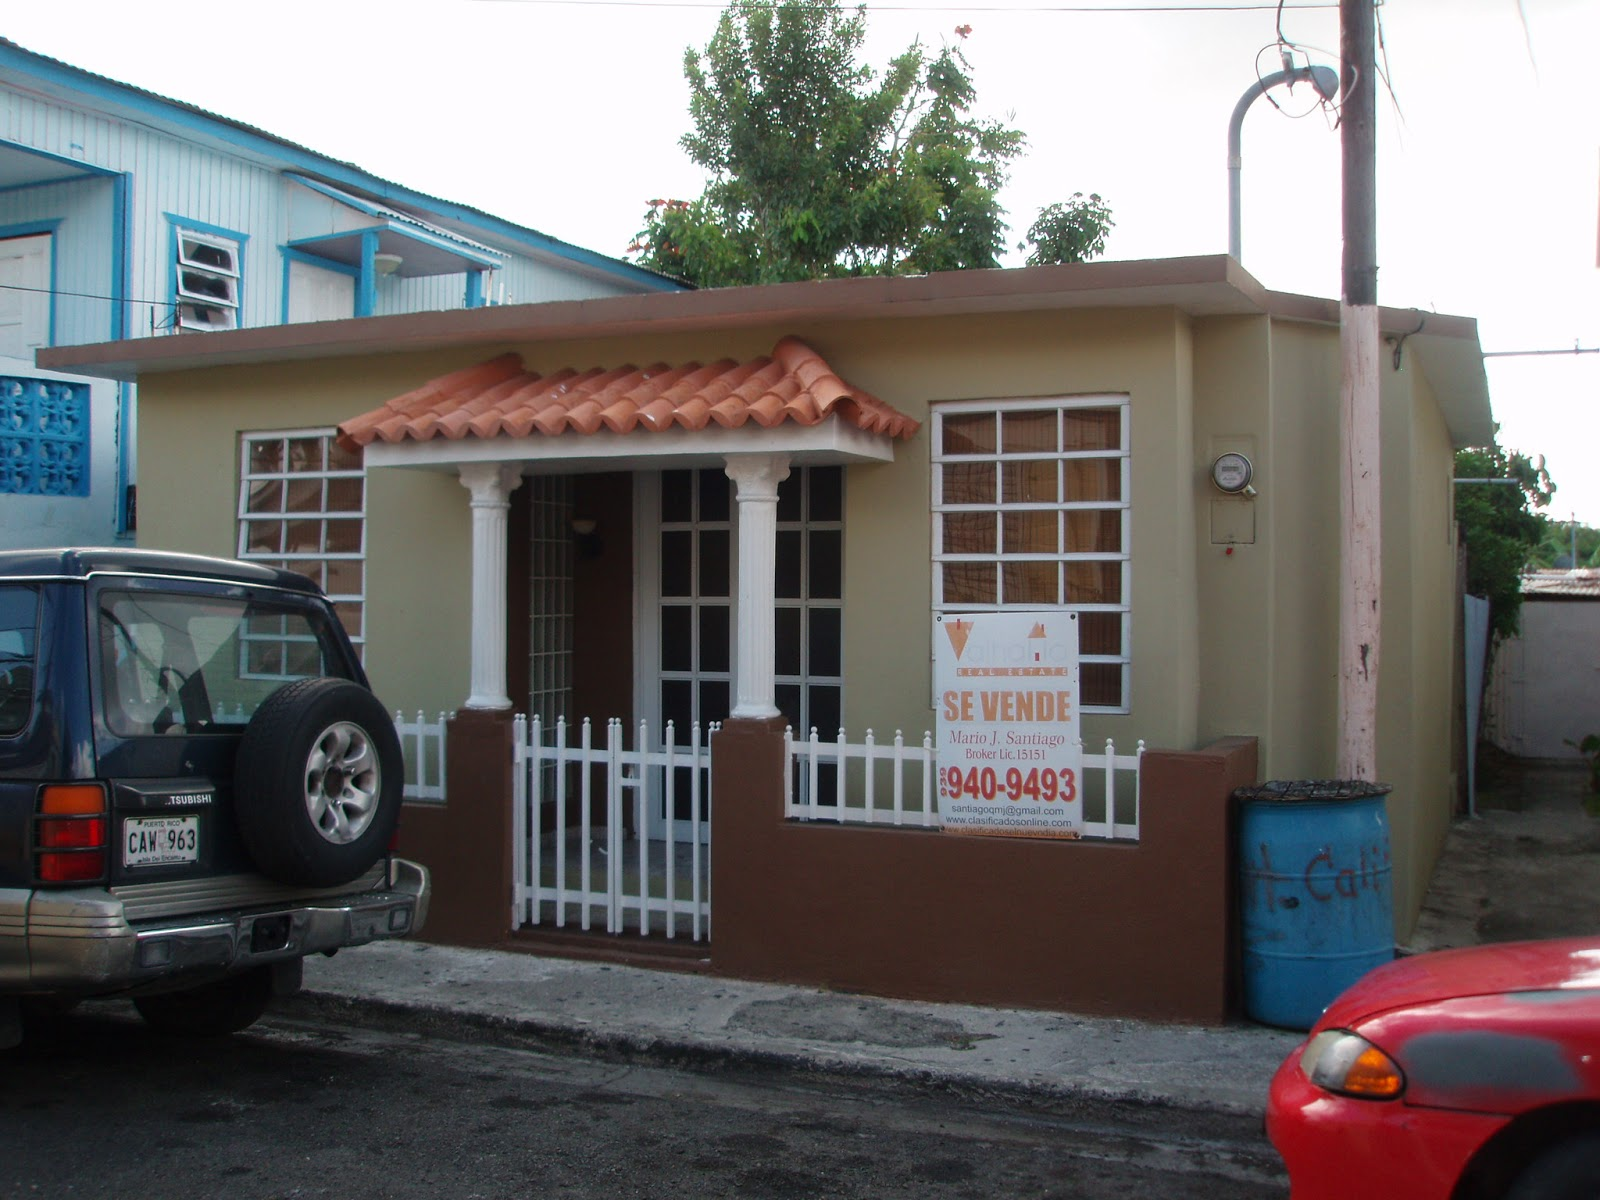 Casas baratas en puerto rico pictures to pin on pinterest for Casetas economicas